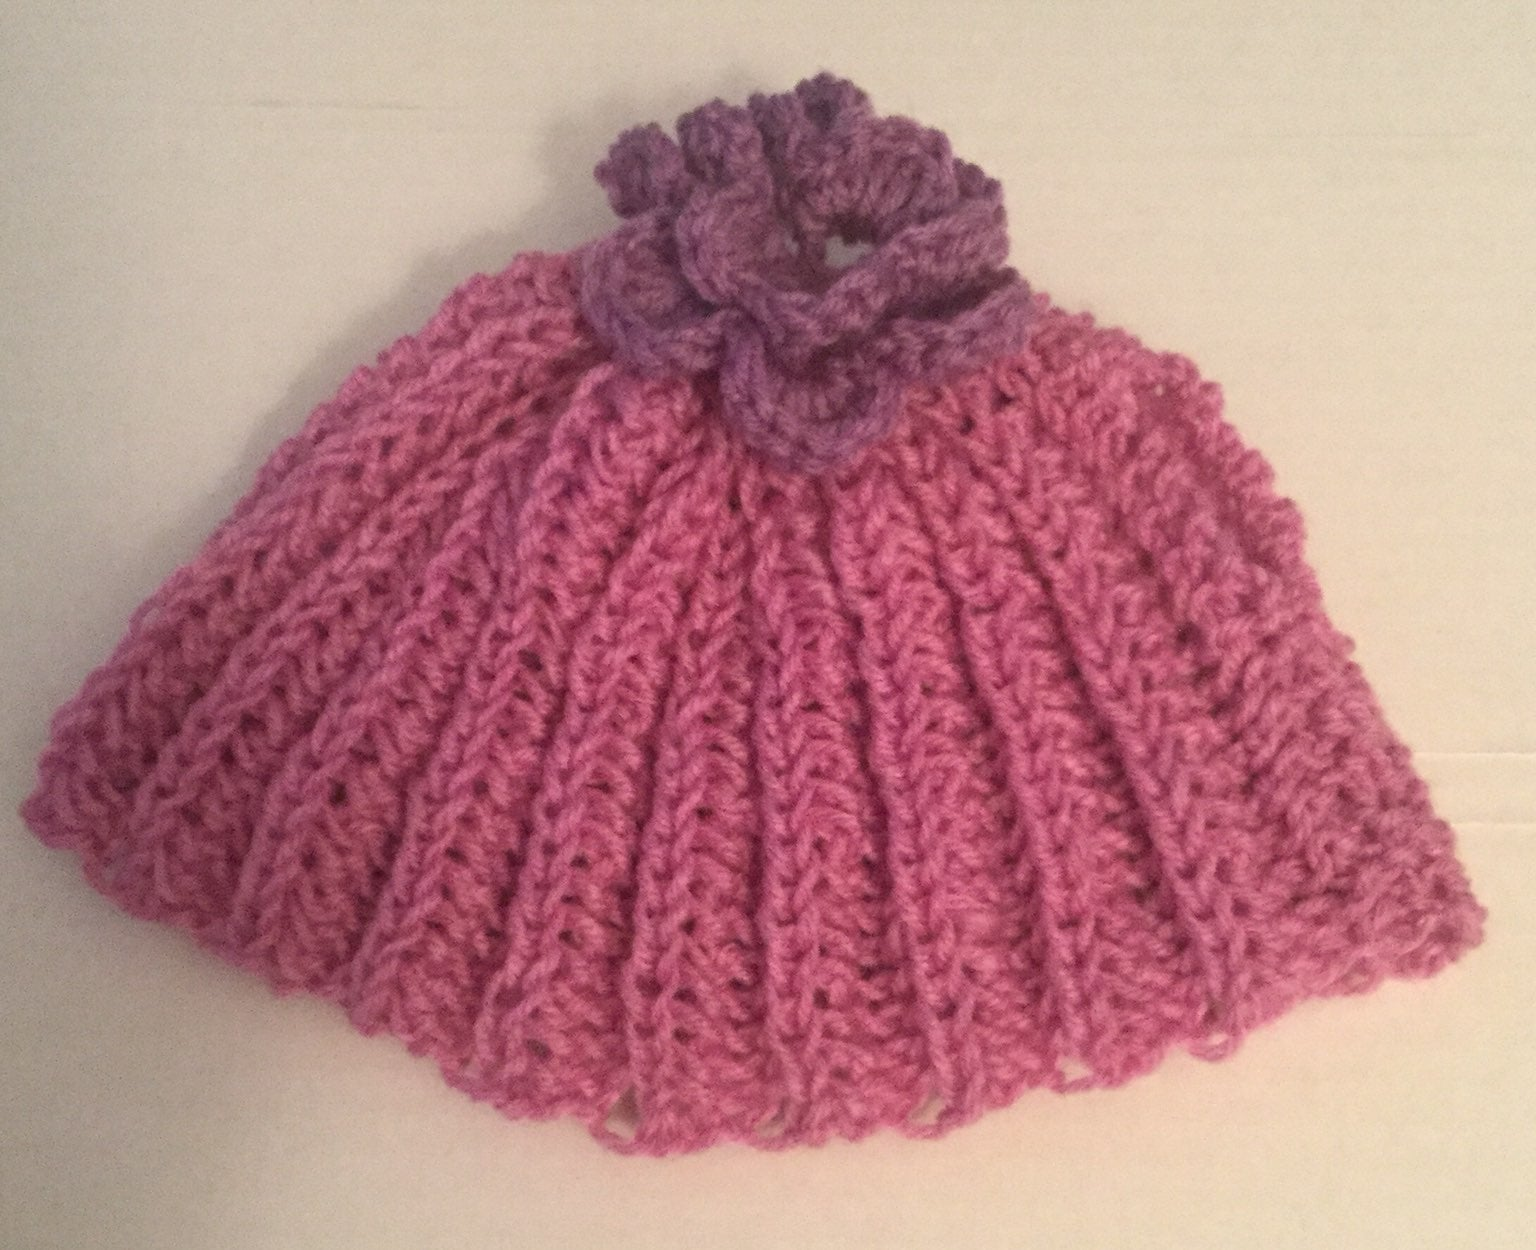 Handknit tea cozy, lilac with rose